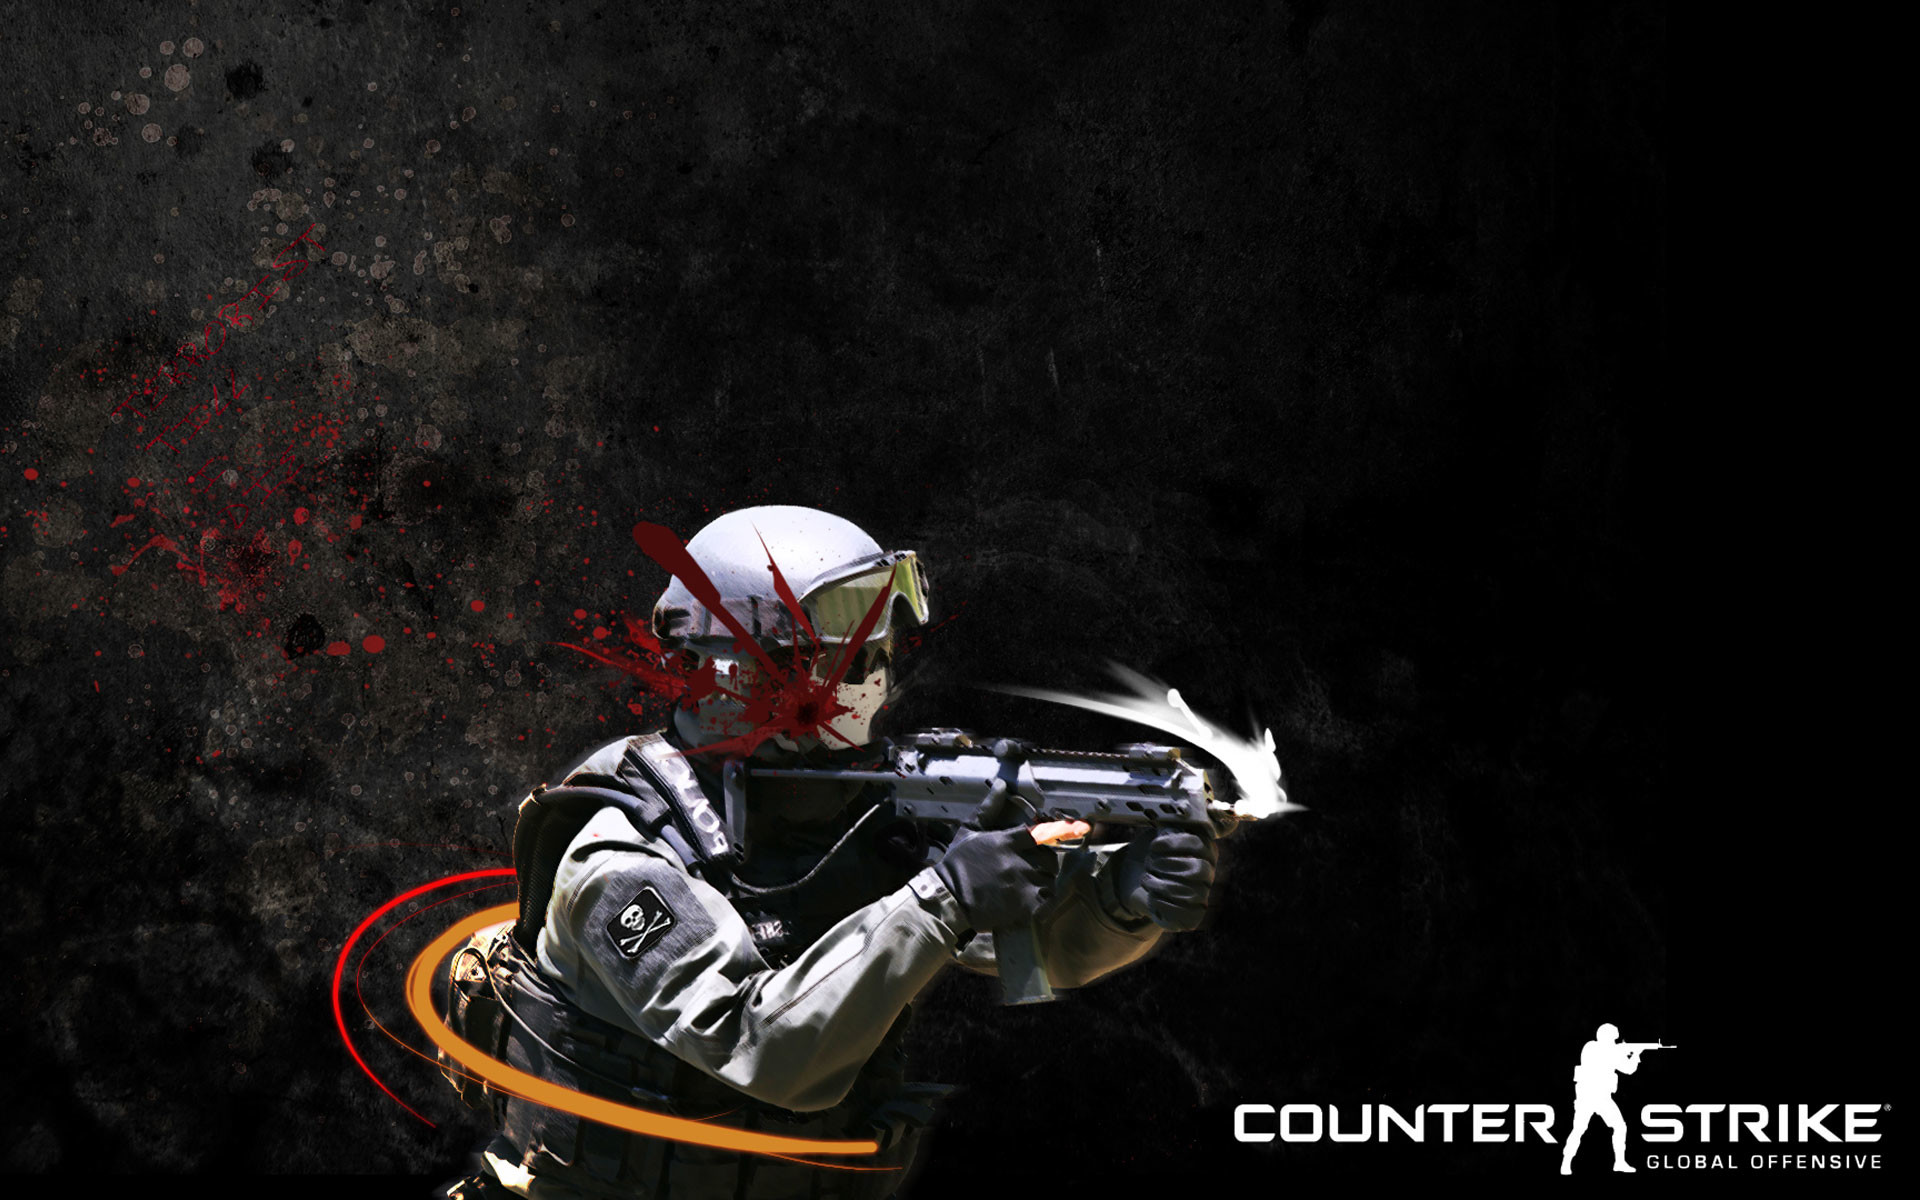 Counterstrike Wallpapers (78+ background pictures)